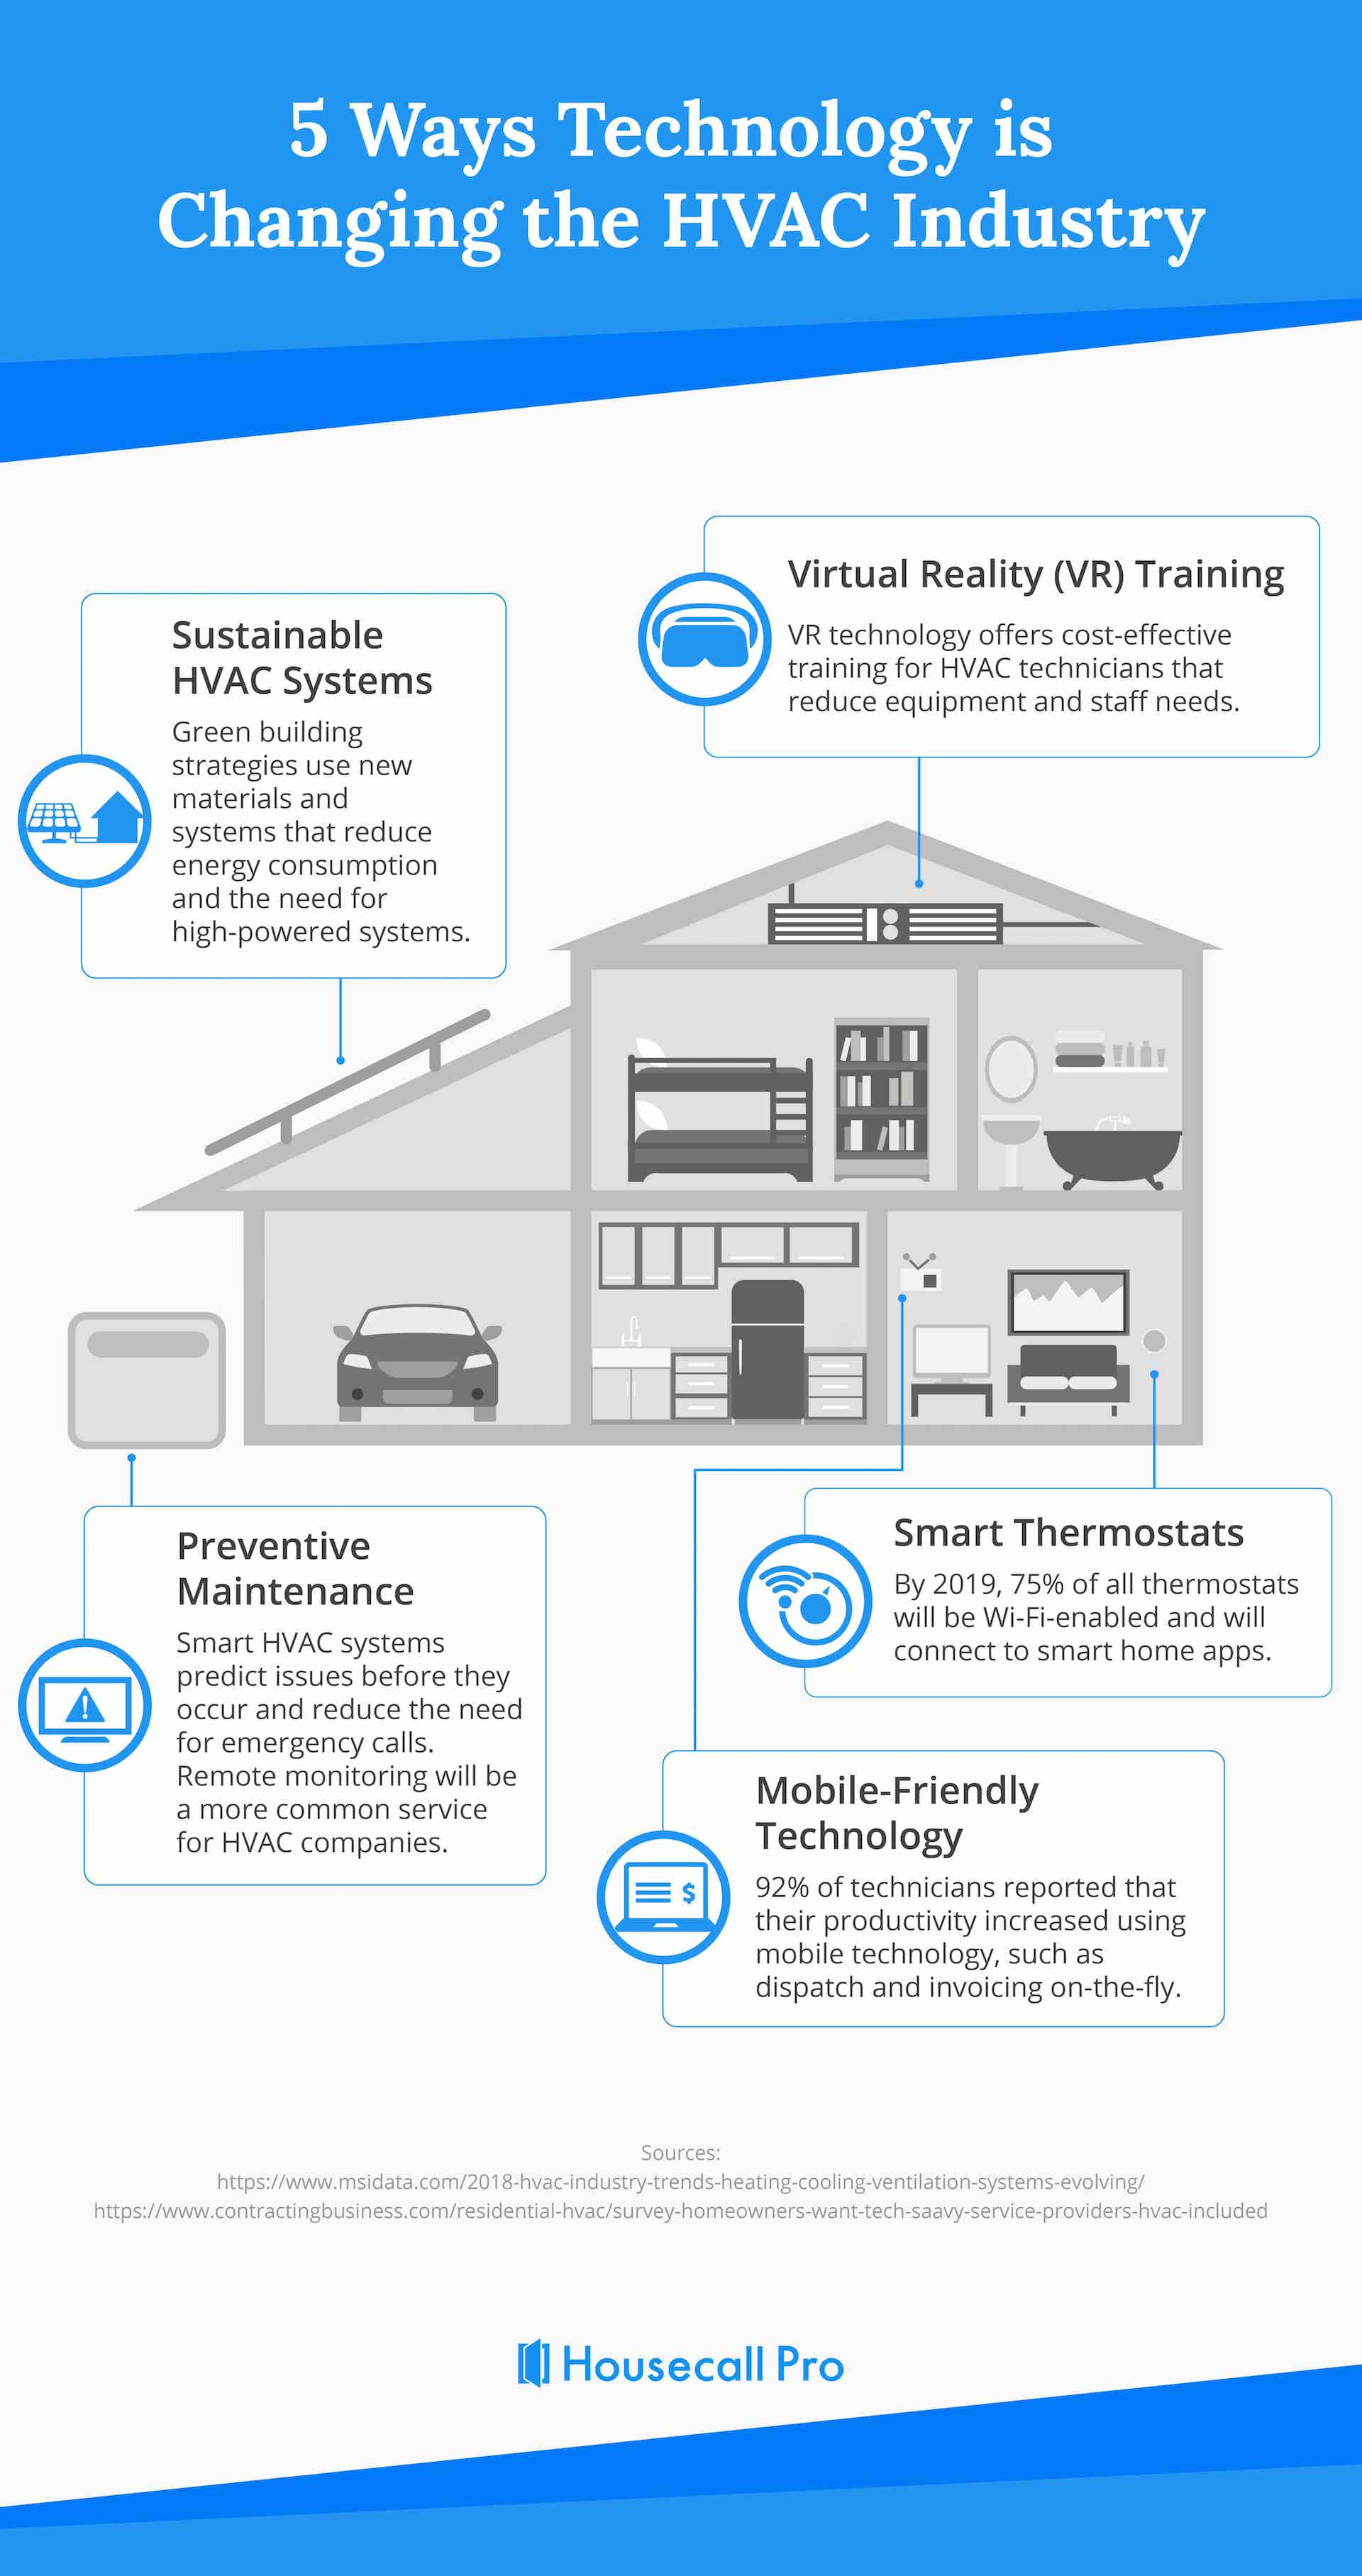 5 Ways Technology is Changing the HVAC Industry 1